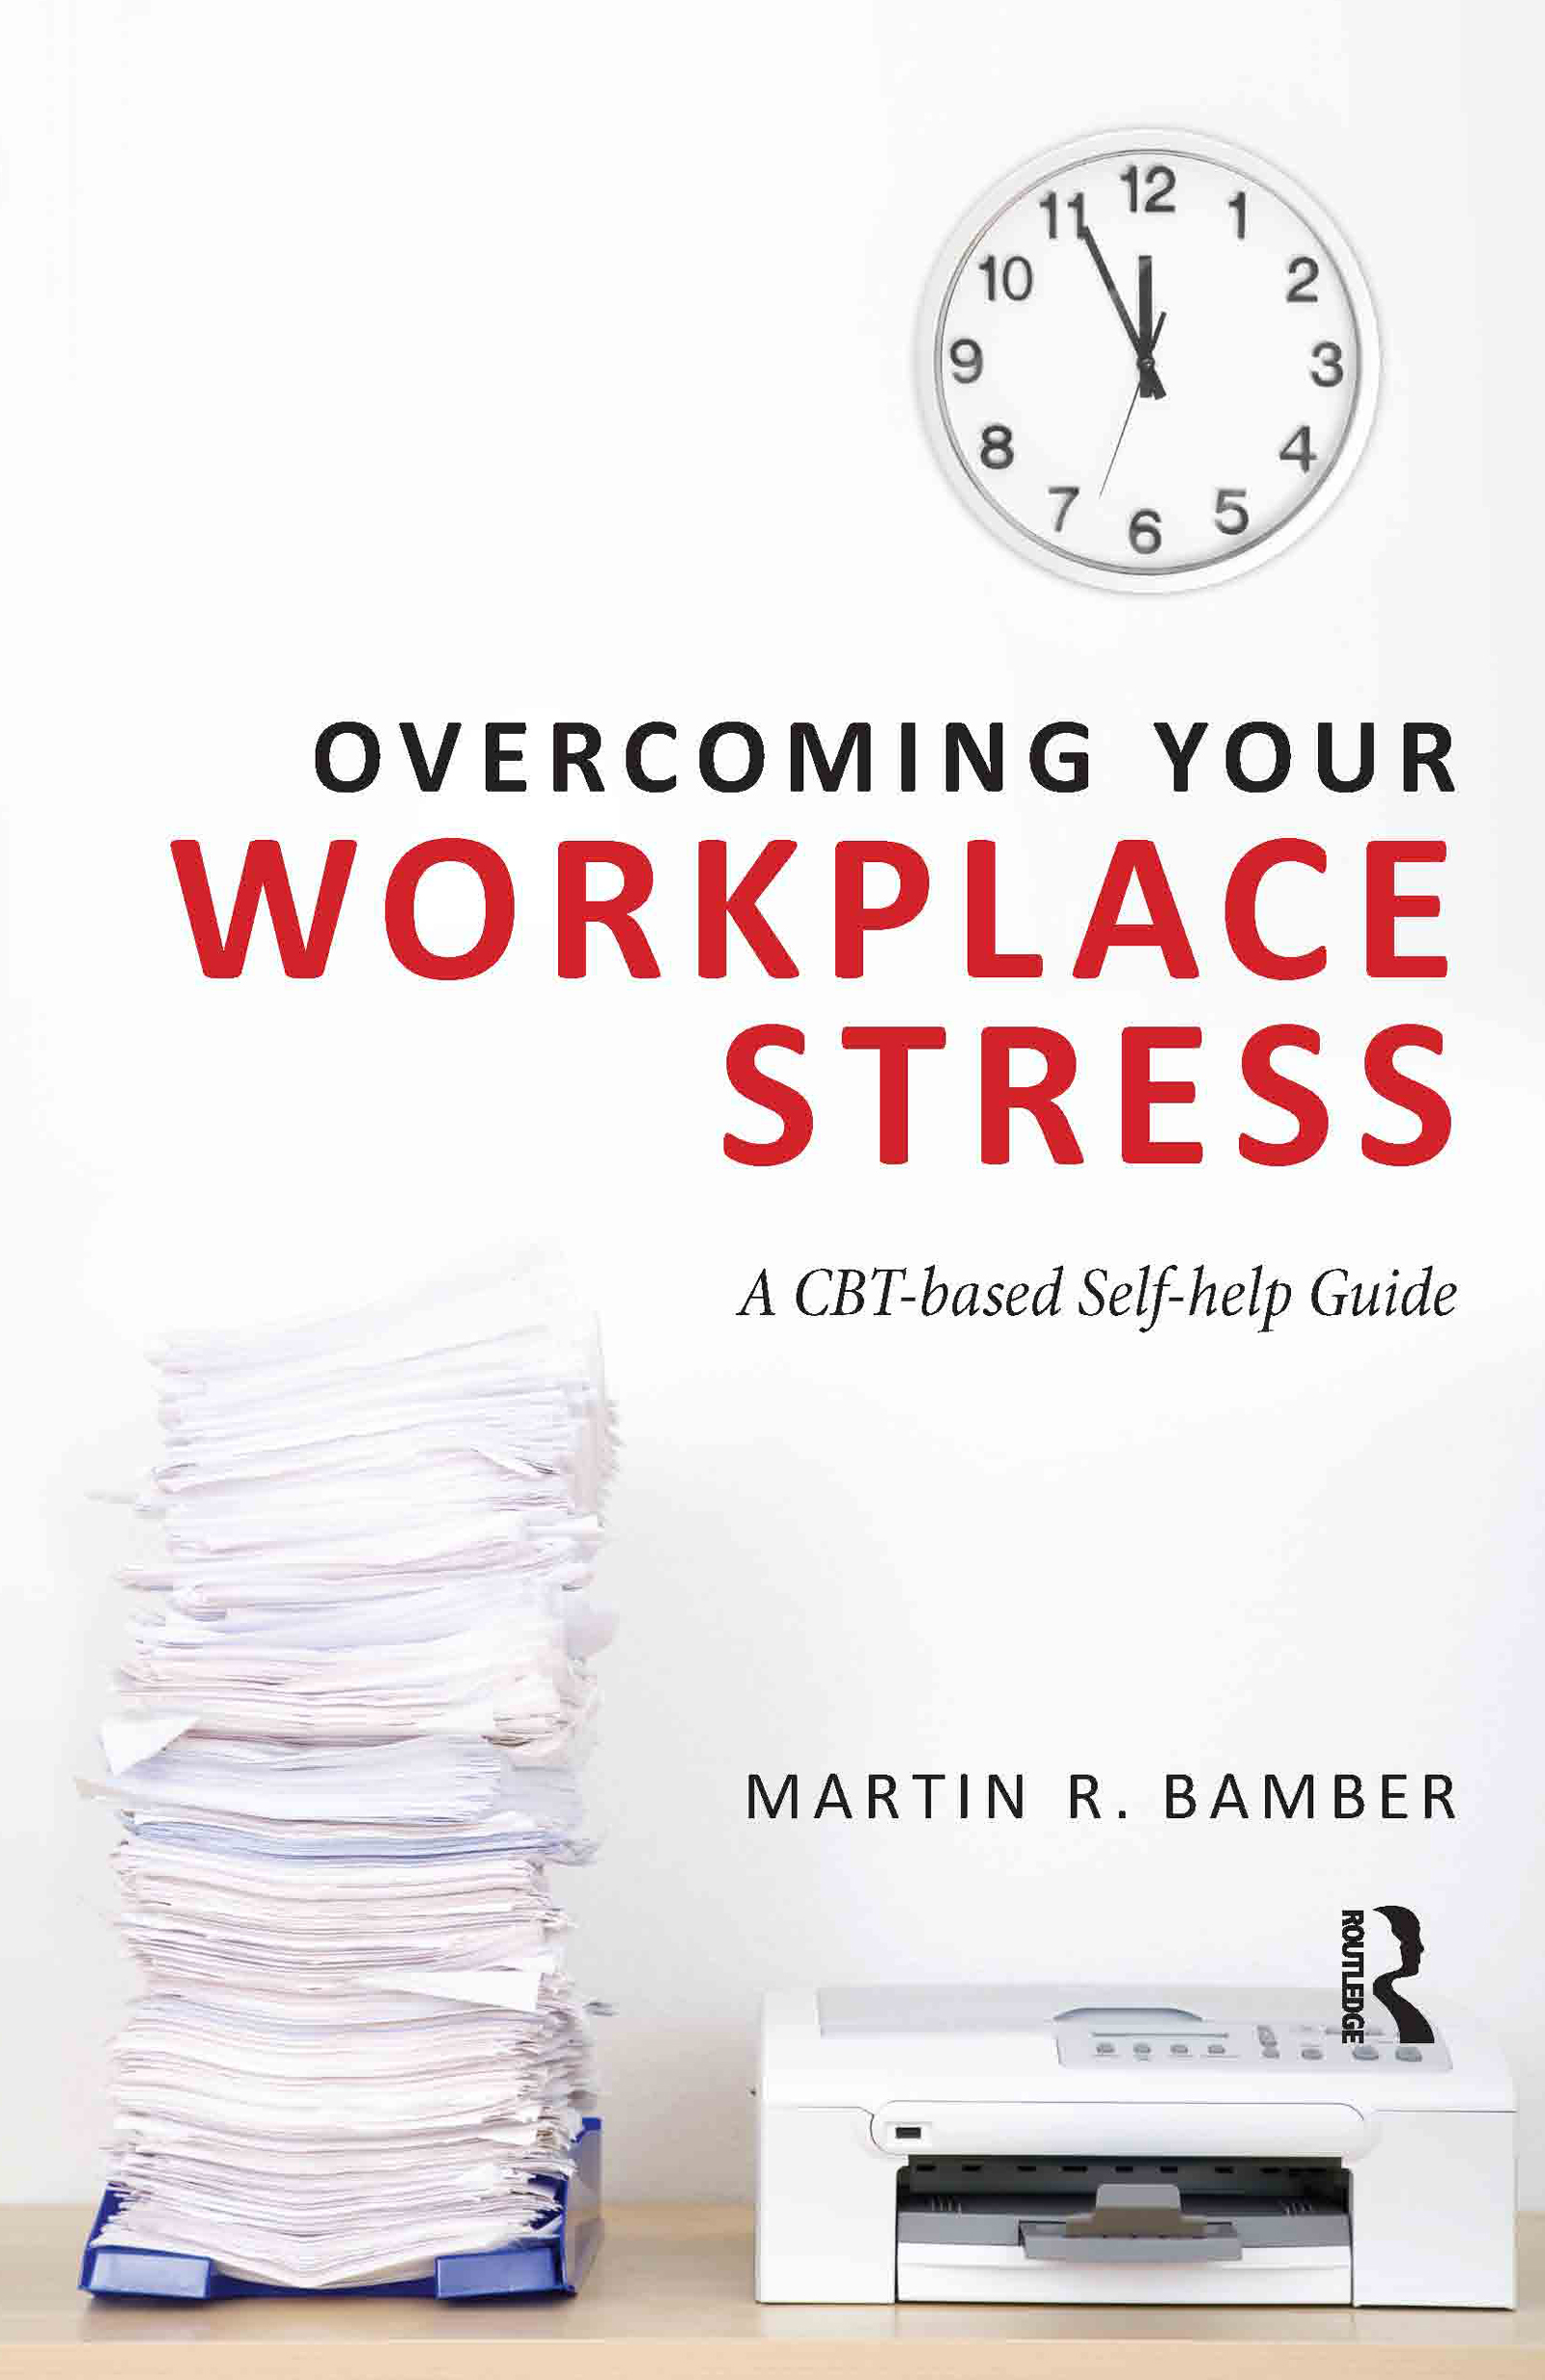 Overcoming Your Workplace Stress: A CBT-based Self-help Guide (Paperback) book cover